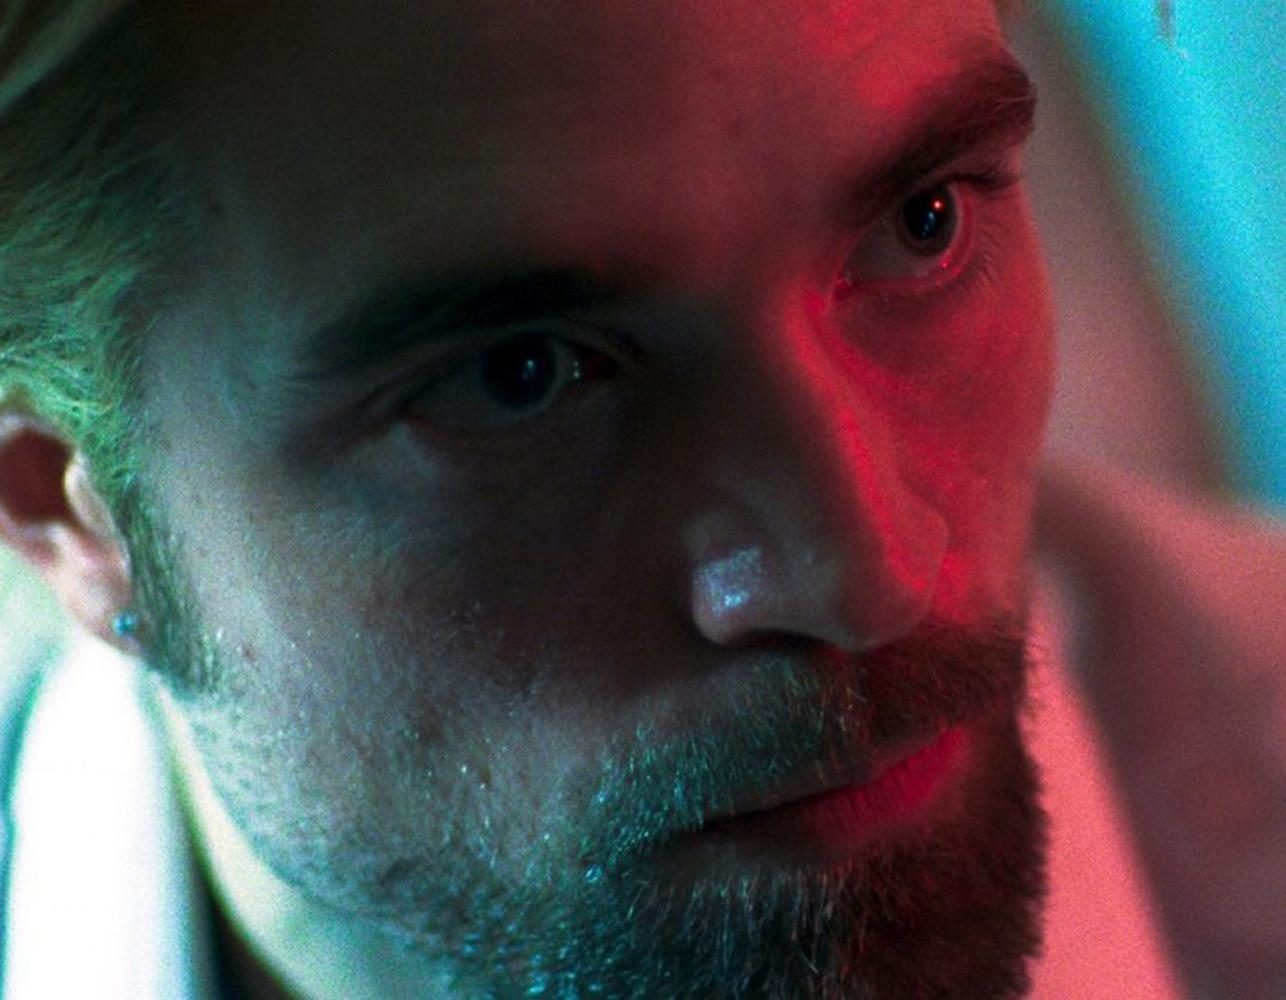 The+new+crime+drama+%22Good+Time%2C%22+directed+by+Ben+and+Josh+Safdie+has+received+considerable+critical+acclaim.+The+film%2C+starring+Robert+Pattinson%2C+currently+boasts+an+88+percent+approval+rating+on+Rotten+Tomatoes.